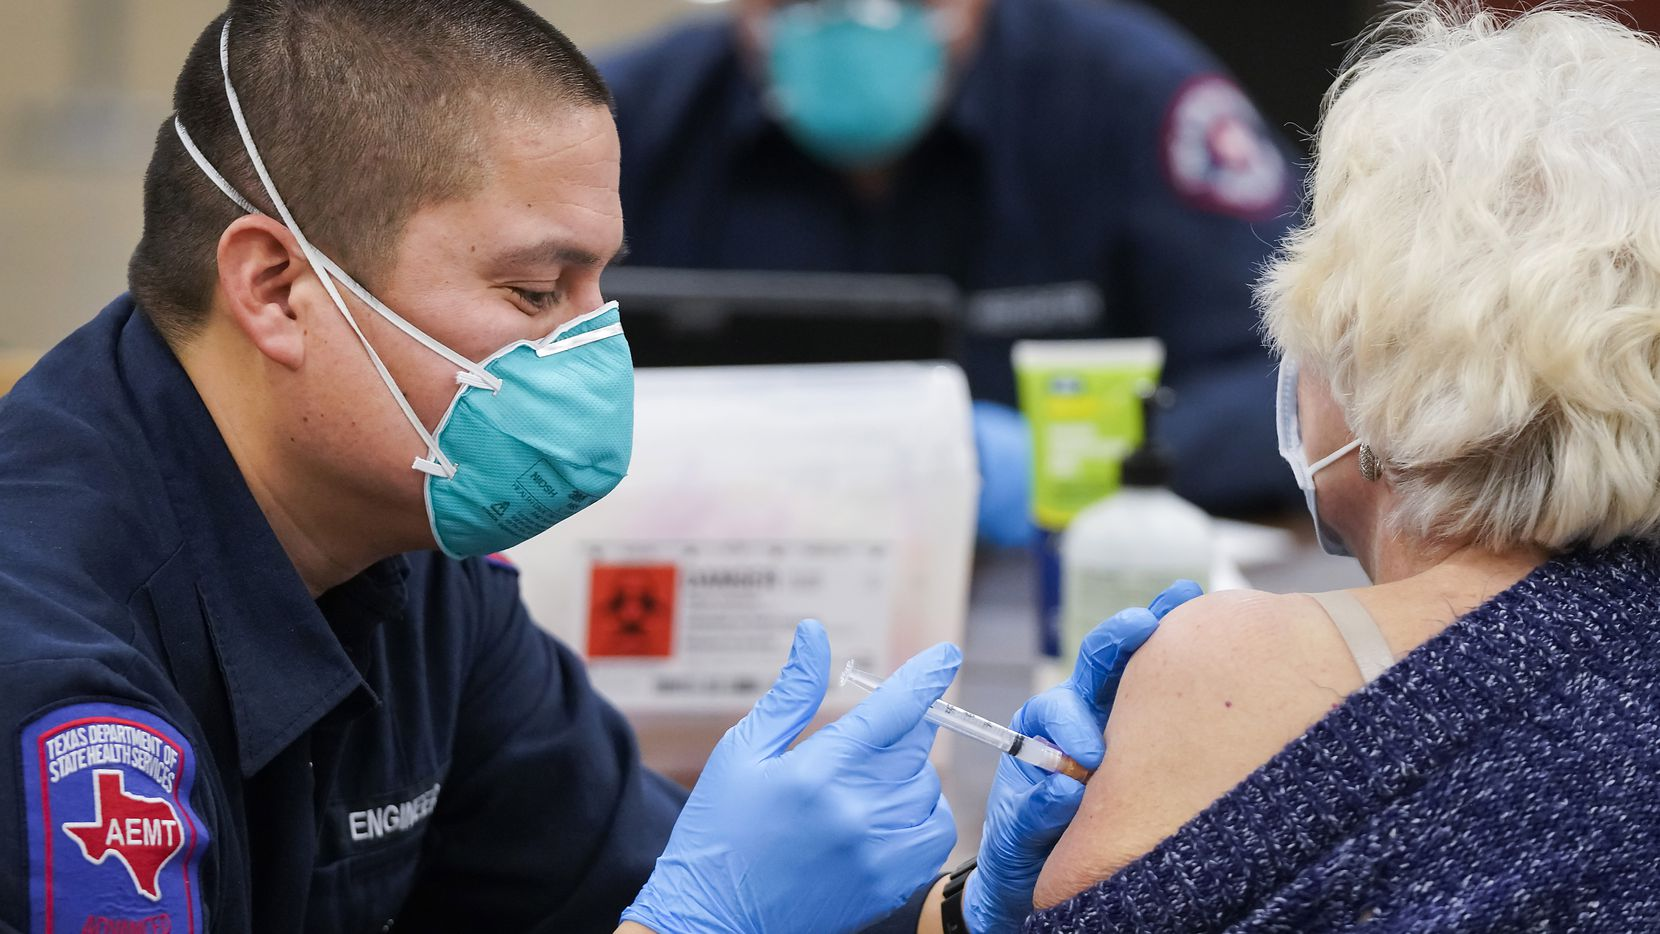 Arlington firefighter Jose Moreno administers the Moderna COVID-19 vaccine to a woman at the Esports Stadium Arlington & Expo Center on Tuesday, Jan. 5, 2021, in Arlington. (Smiley N. Pool/The Dallas Morning News)